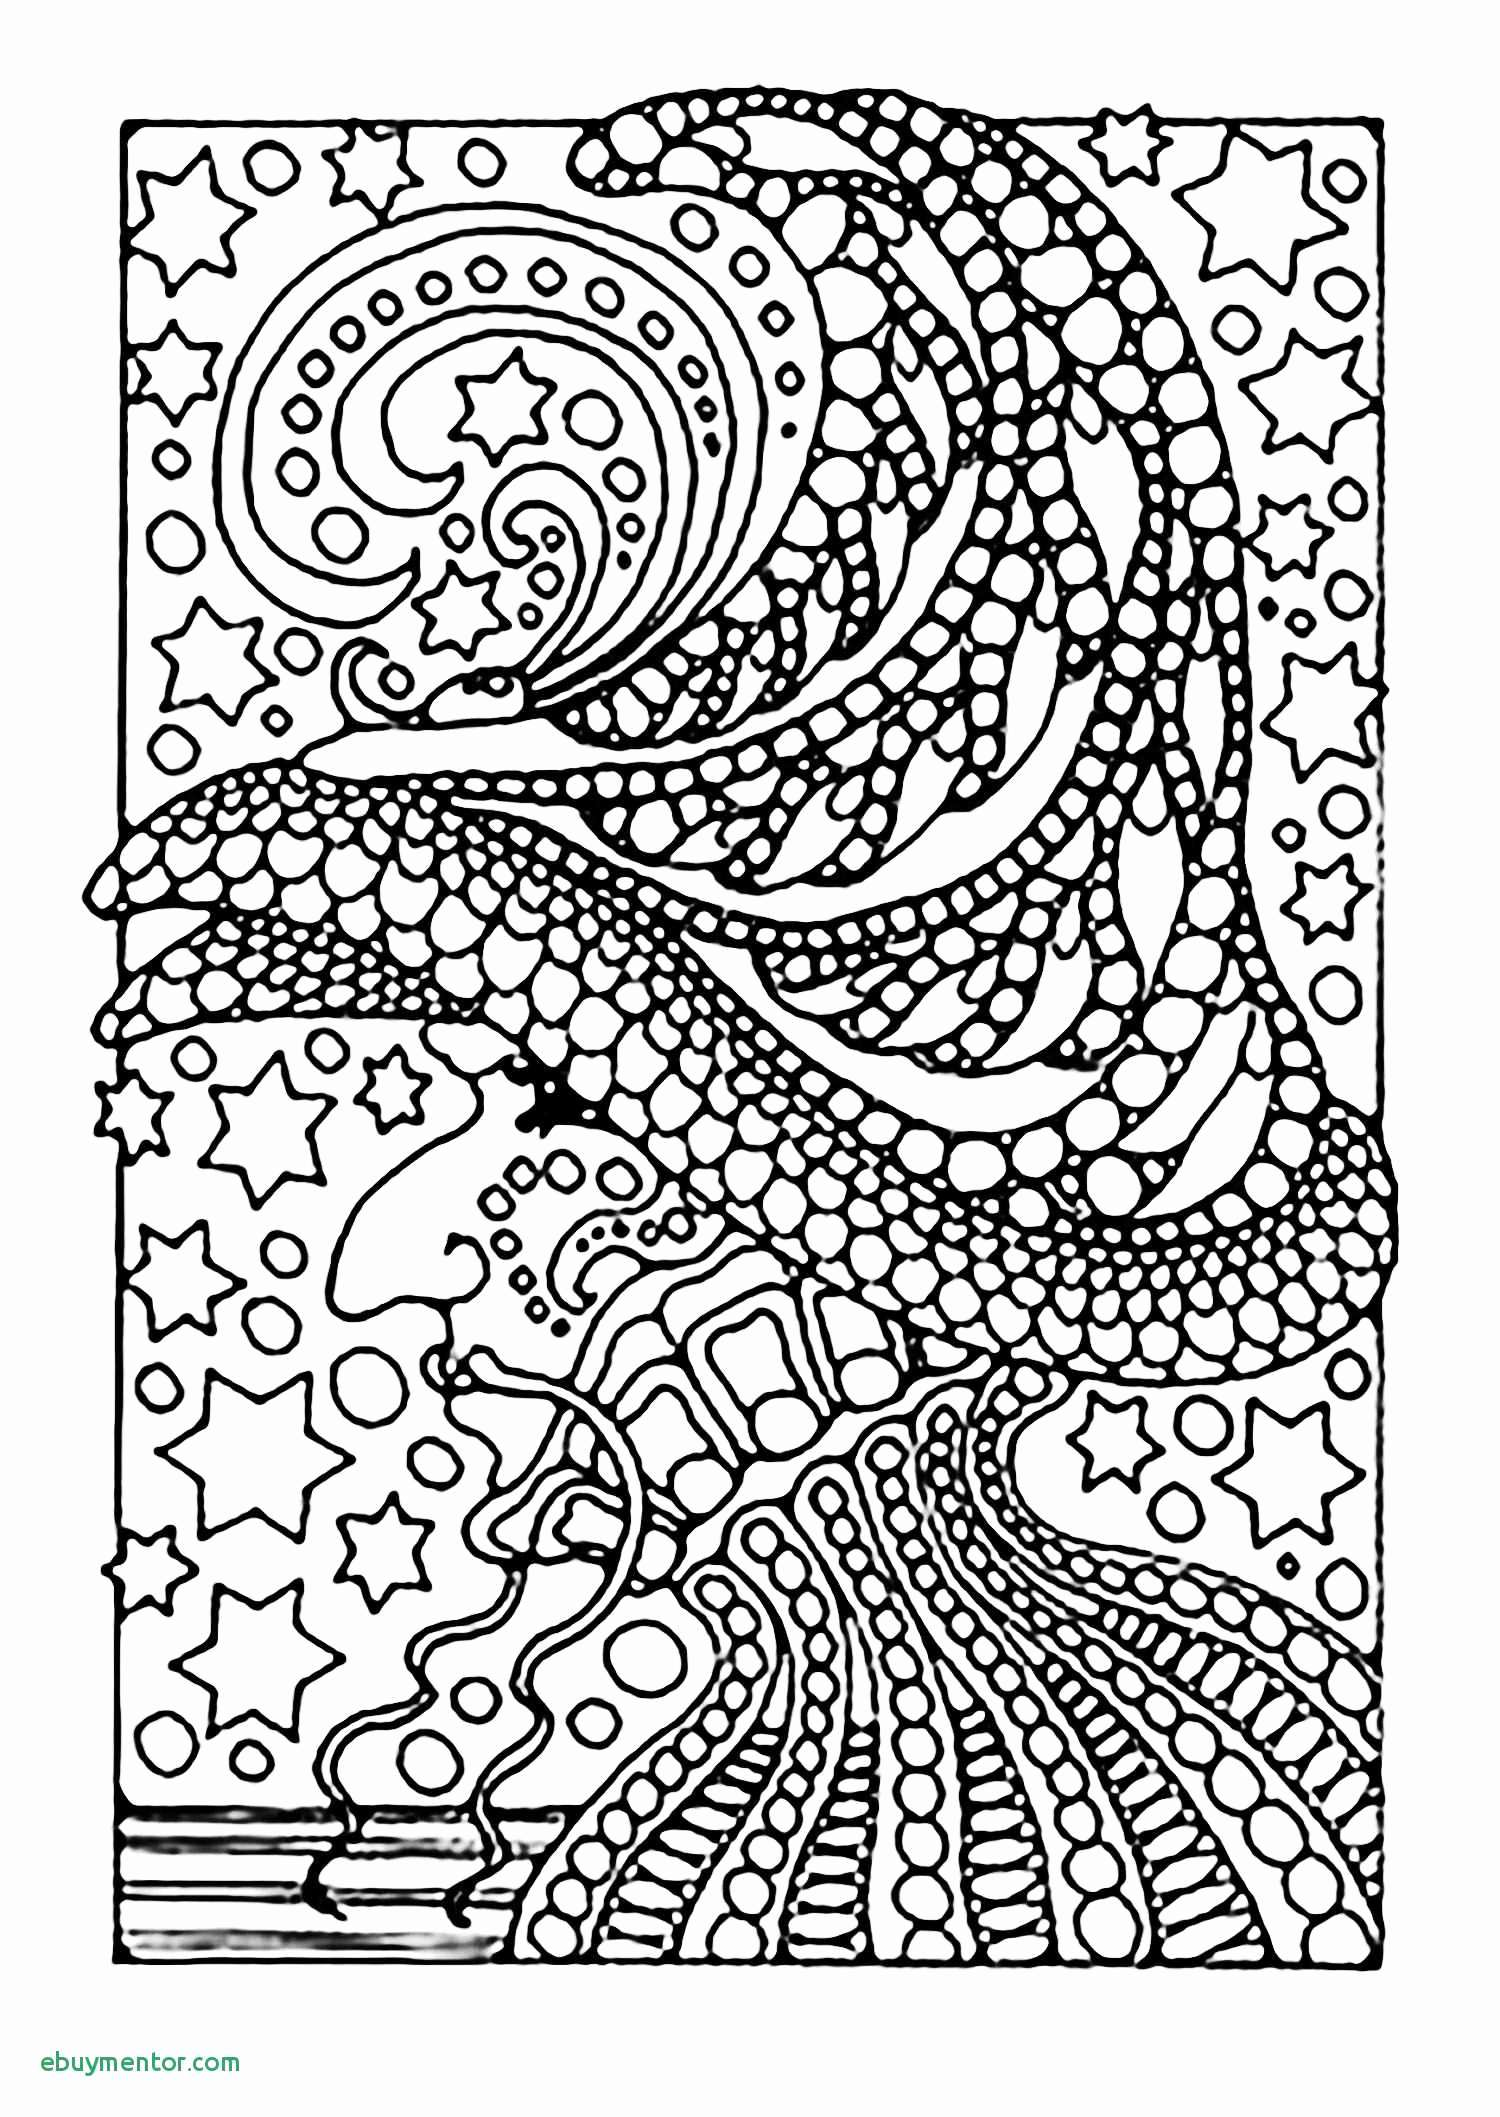 Christmas Coloring Pages Nutcracker With Page For Printing